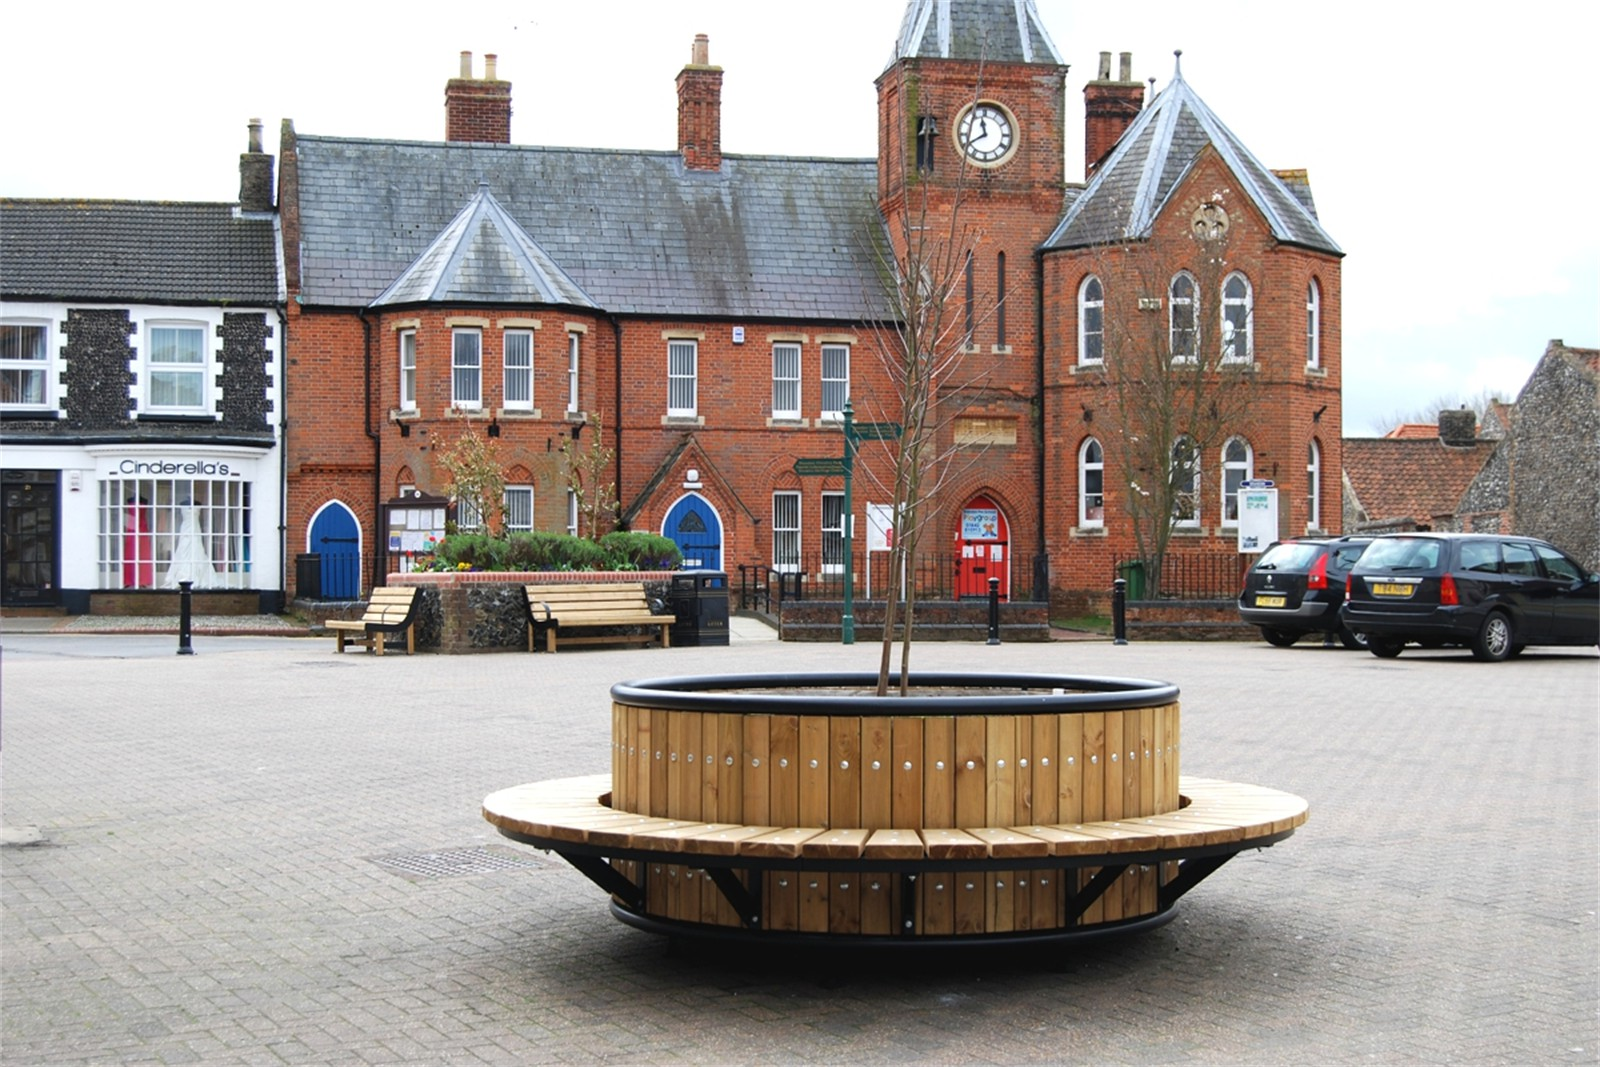 c12807 - planters, seating and cycle stands supplied to Brandon Town Centre